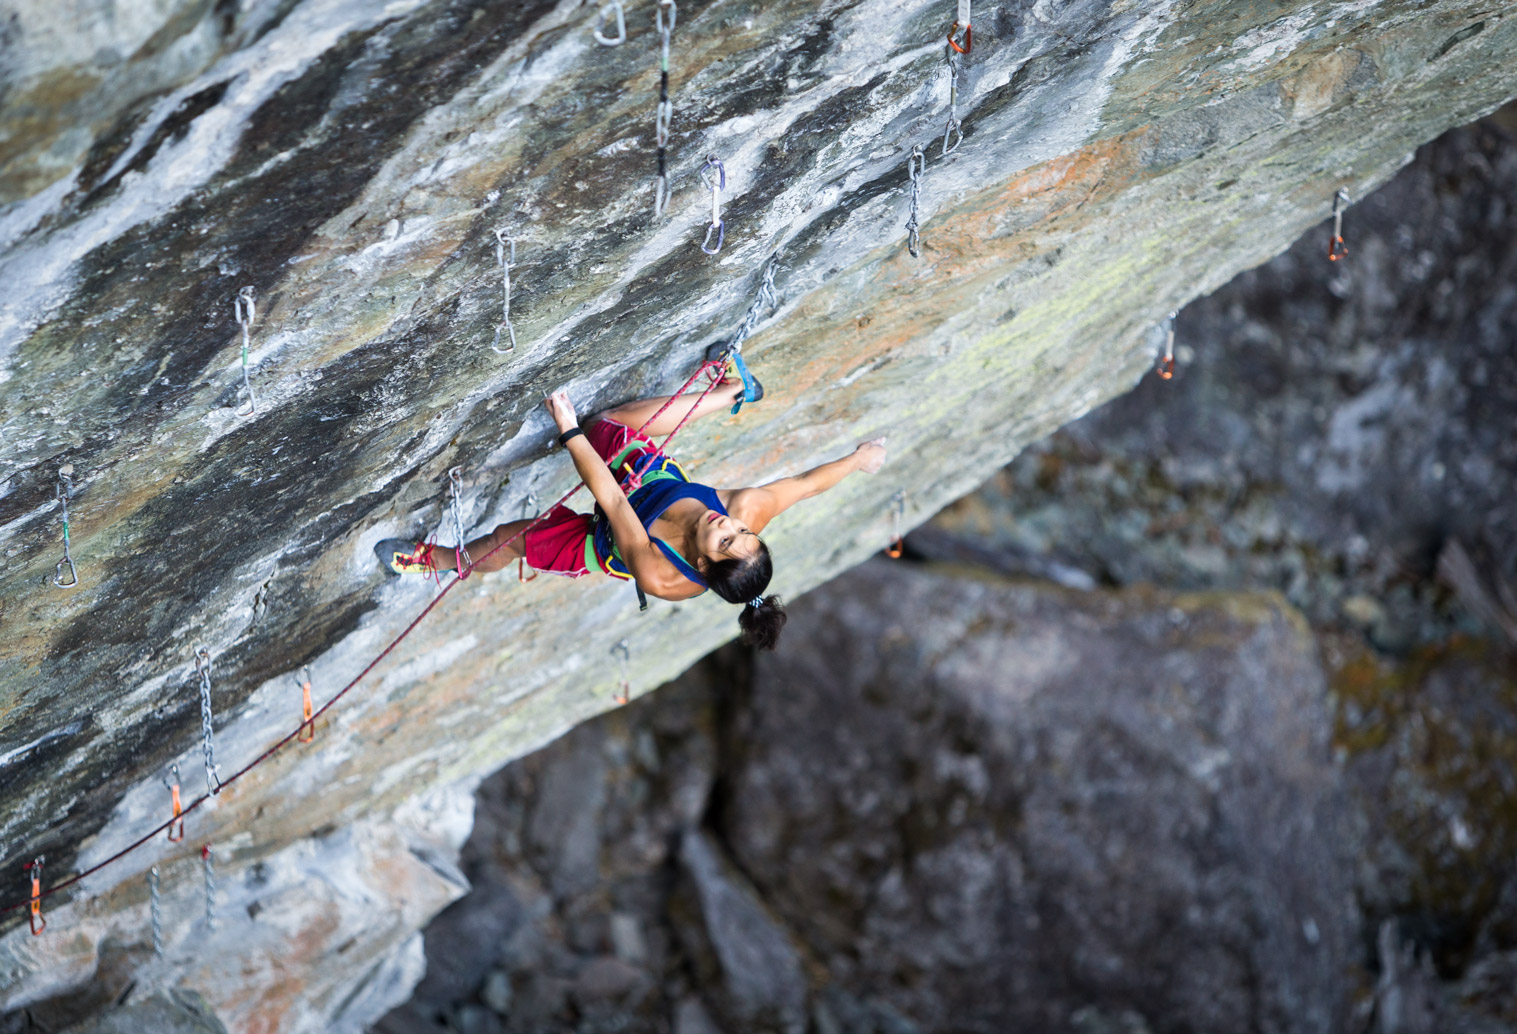 Alannah Yip - The Pulse, 14a - Cheakamus Canyon, BC.